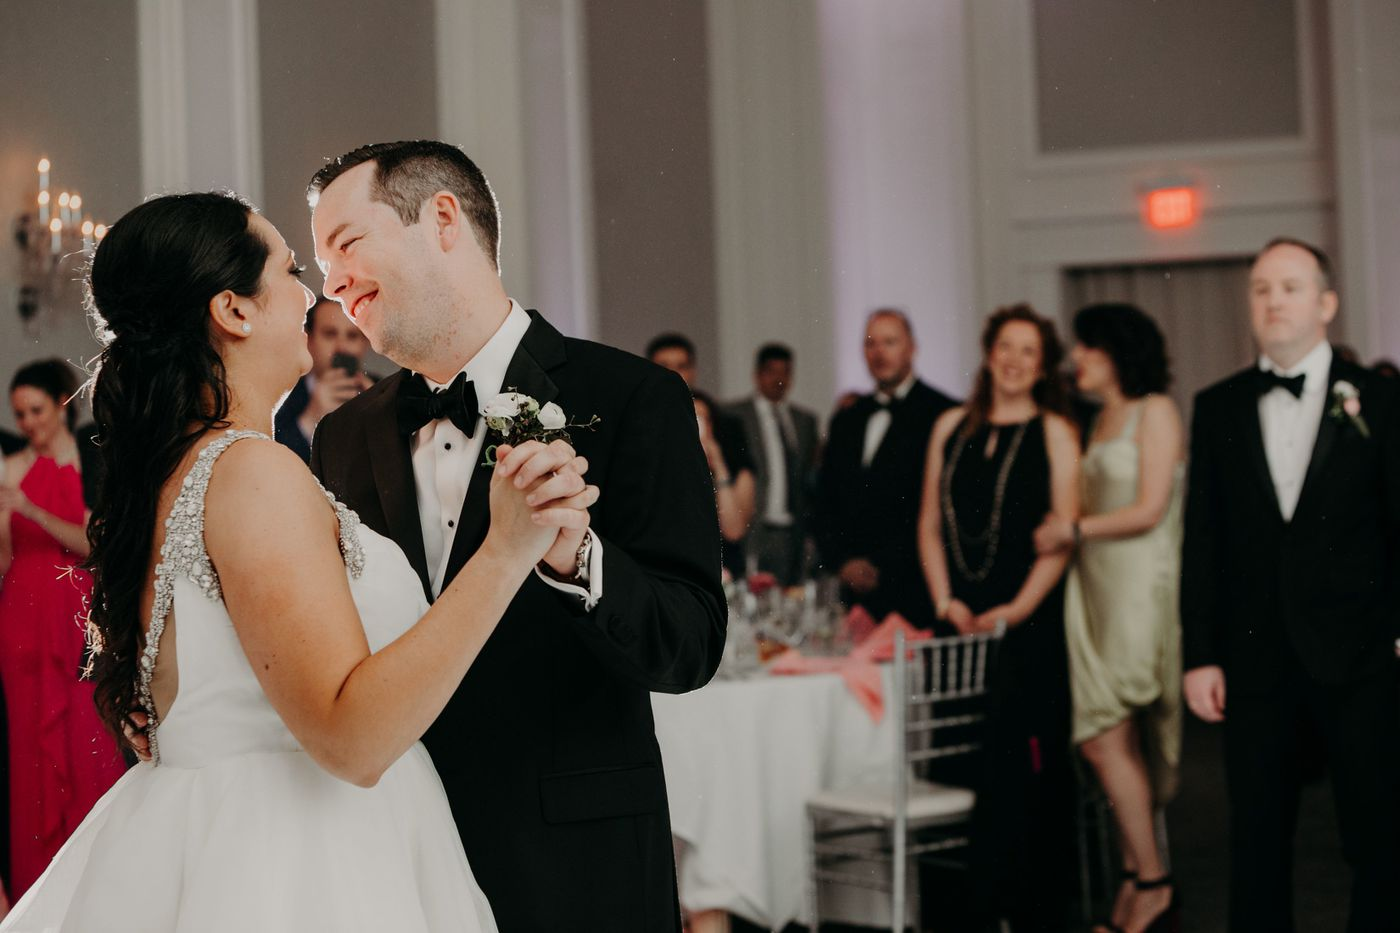 Philadelphia weddings: Michelle Robertson and Gavan Dunleavy